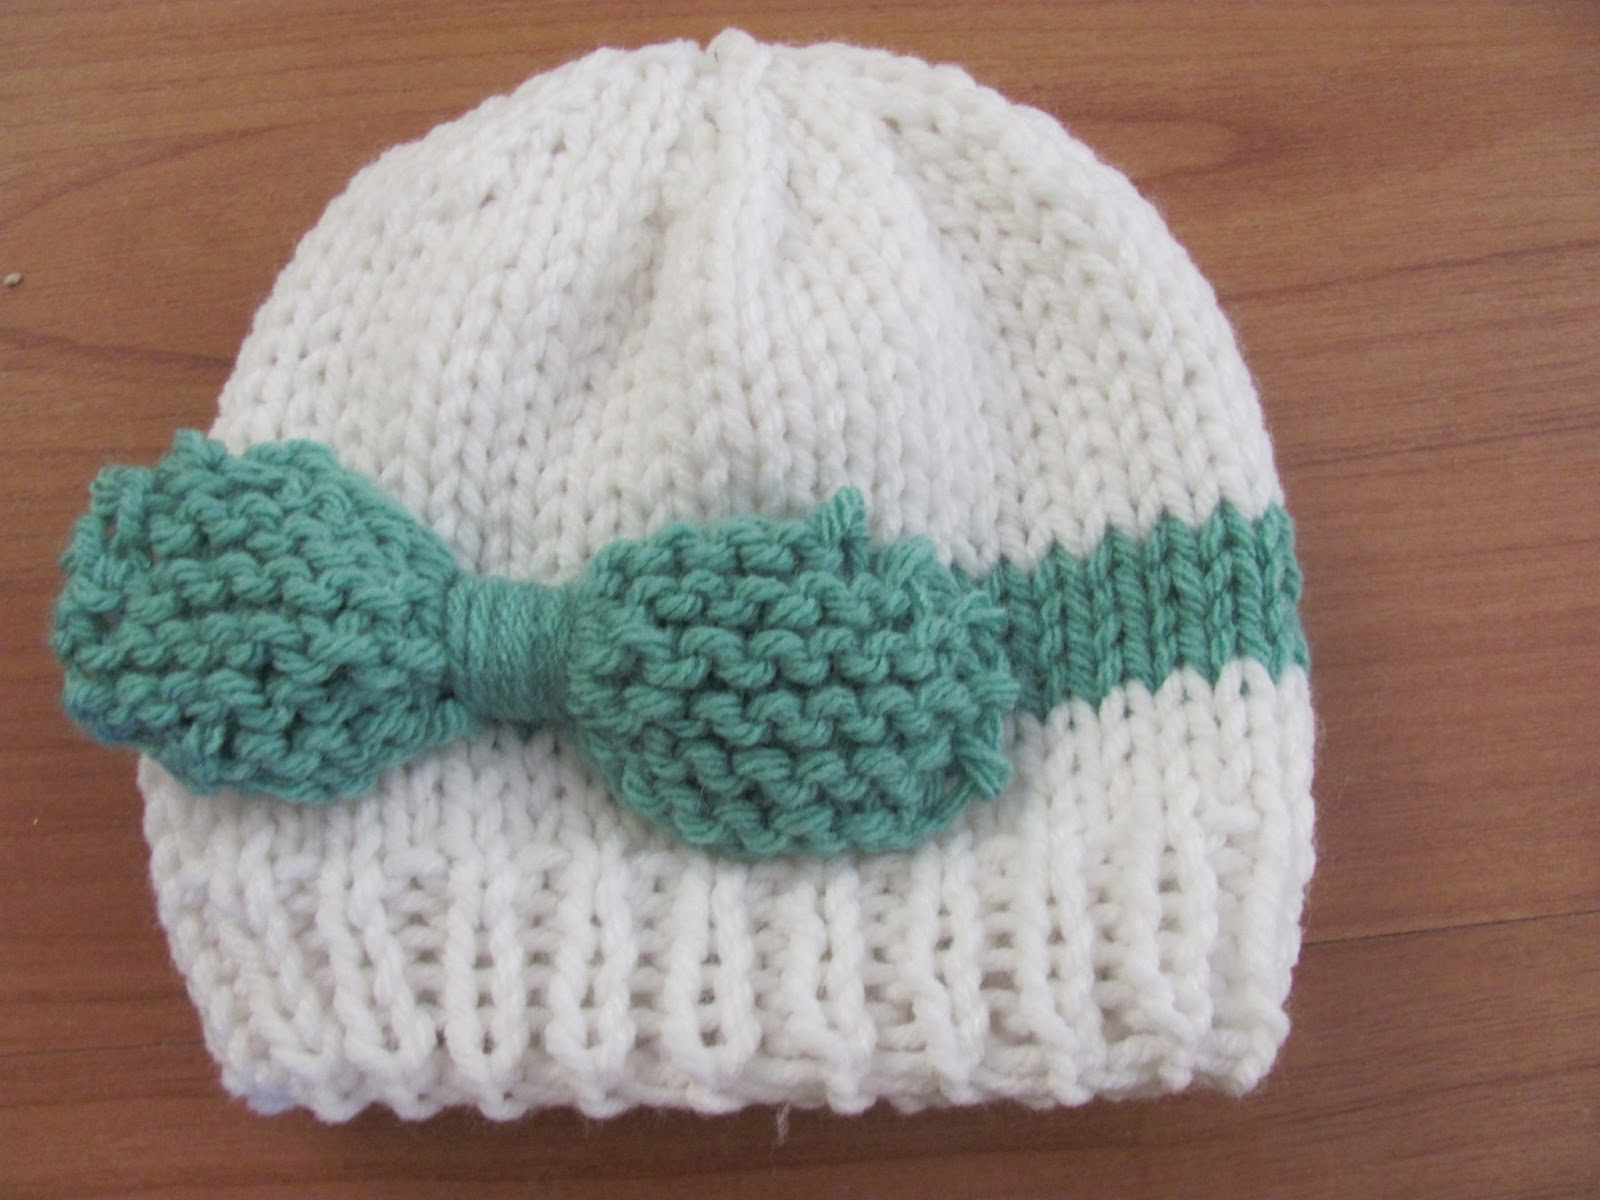 Hat Knitting Patterns : Knit A Simple Hat (Beanie) Free Knitting Patterns Tutorials